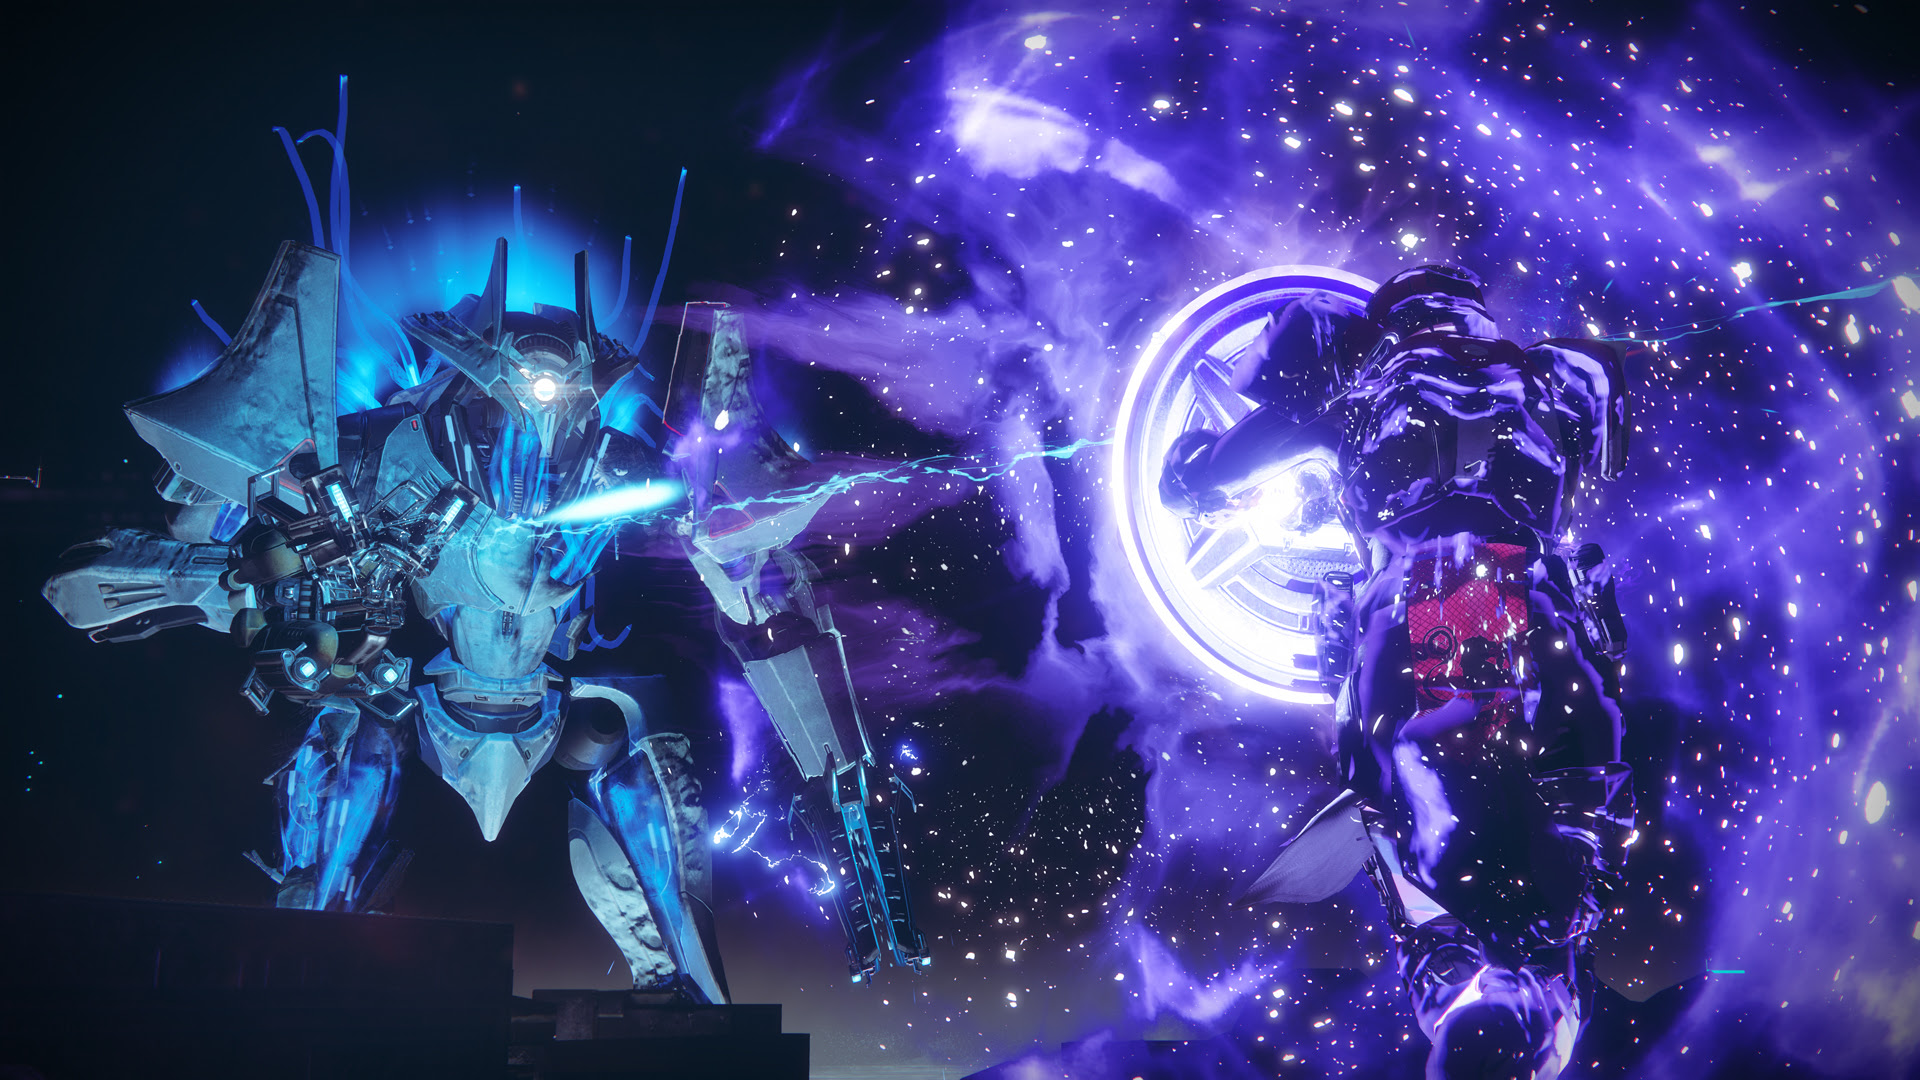 Destiny 2 will launch with more than 50 hours of story content screenshot